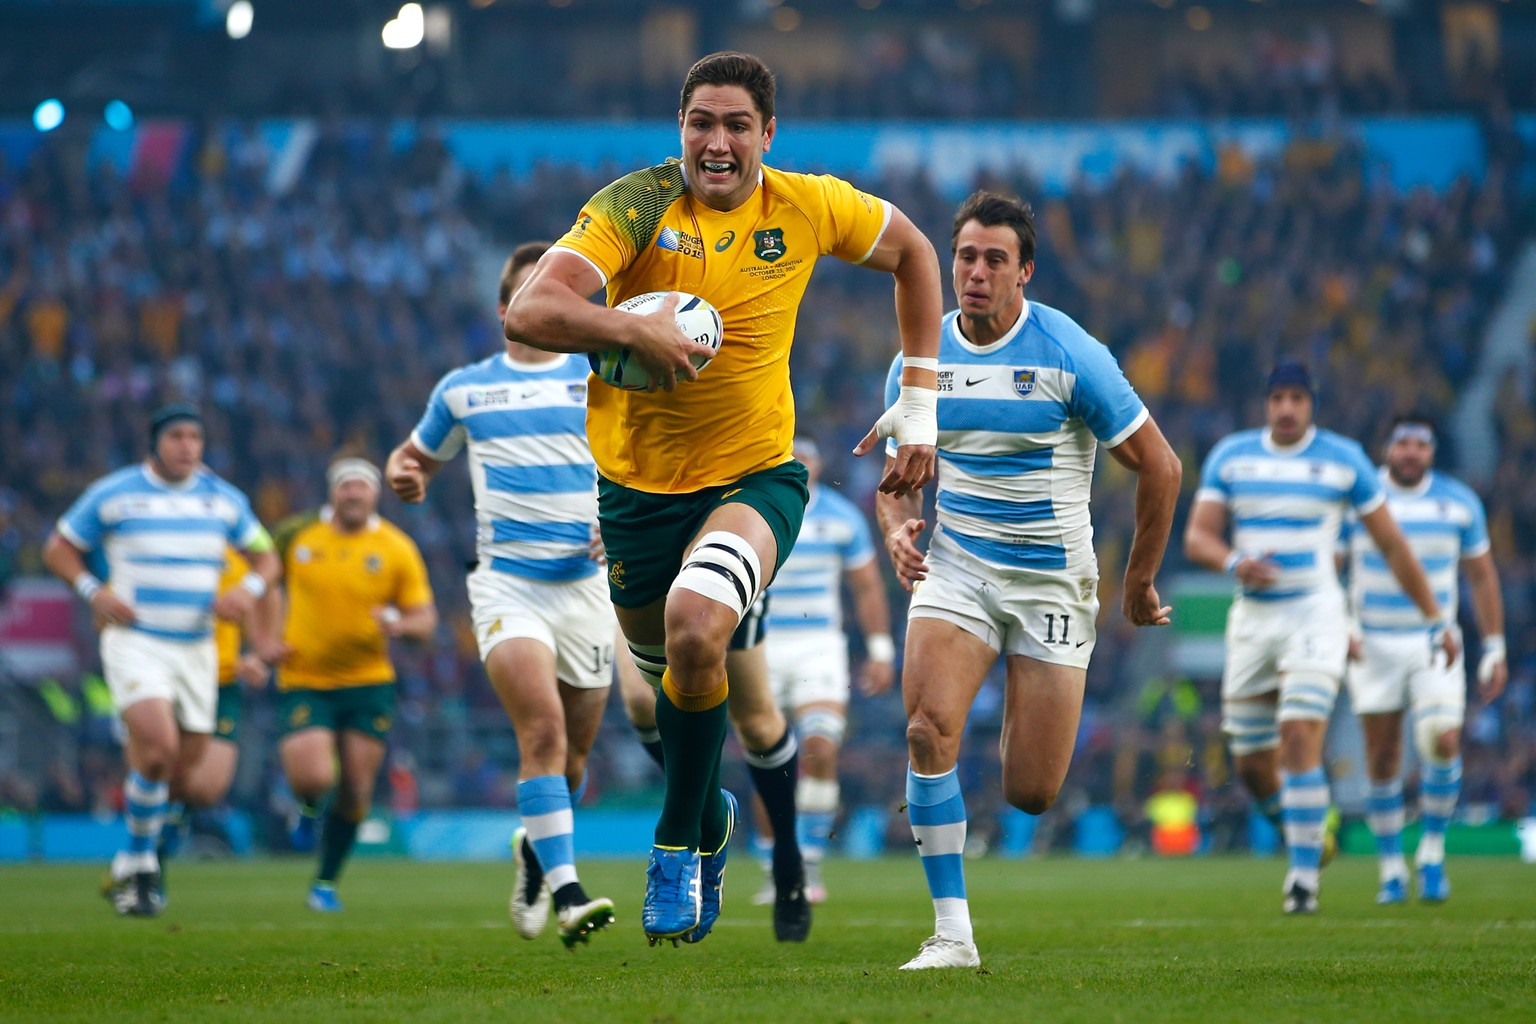 LONDON, ENGLAND - OCTOBER 25:   Rob Simmons of Australia races through to score the opening try during the 2015 Rugby World Cup Semi Final match between Argentina and Australia at Twickenham Stadium on October 25, 2015 in London, United Kingdom.  (Photo by Mike Hewitt/Getty Images)